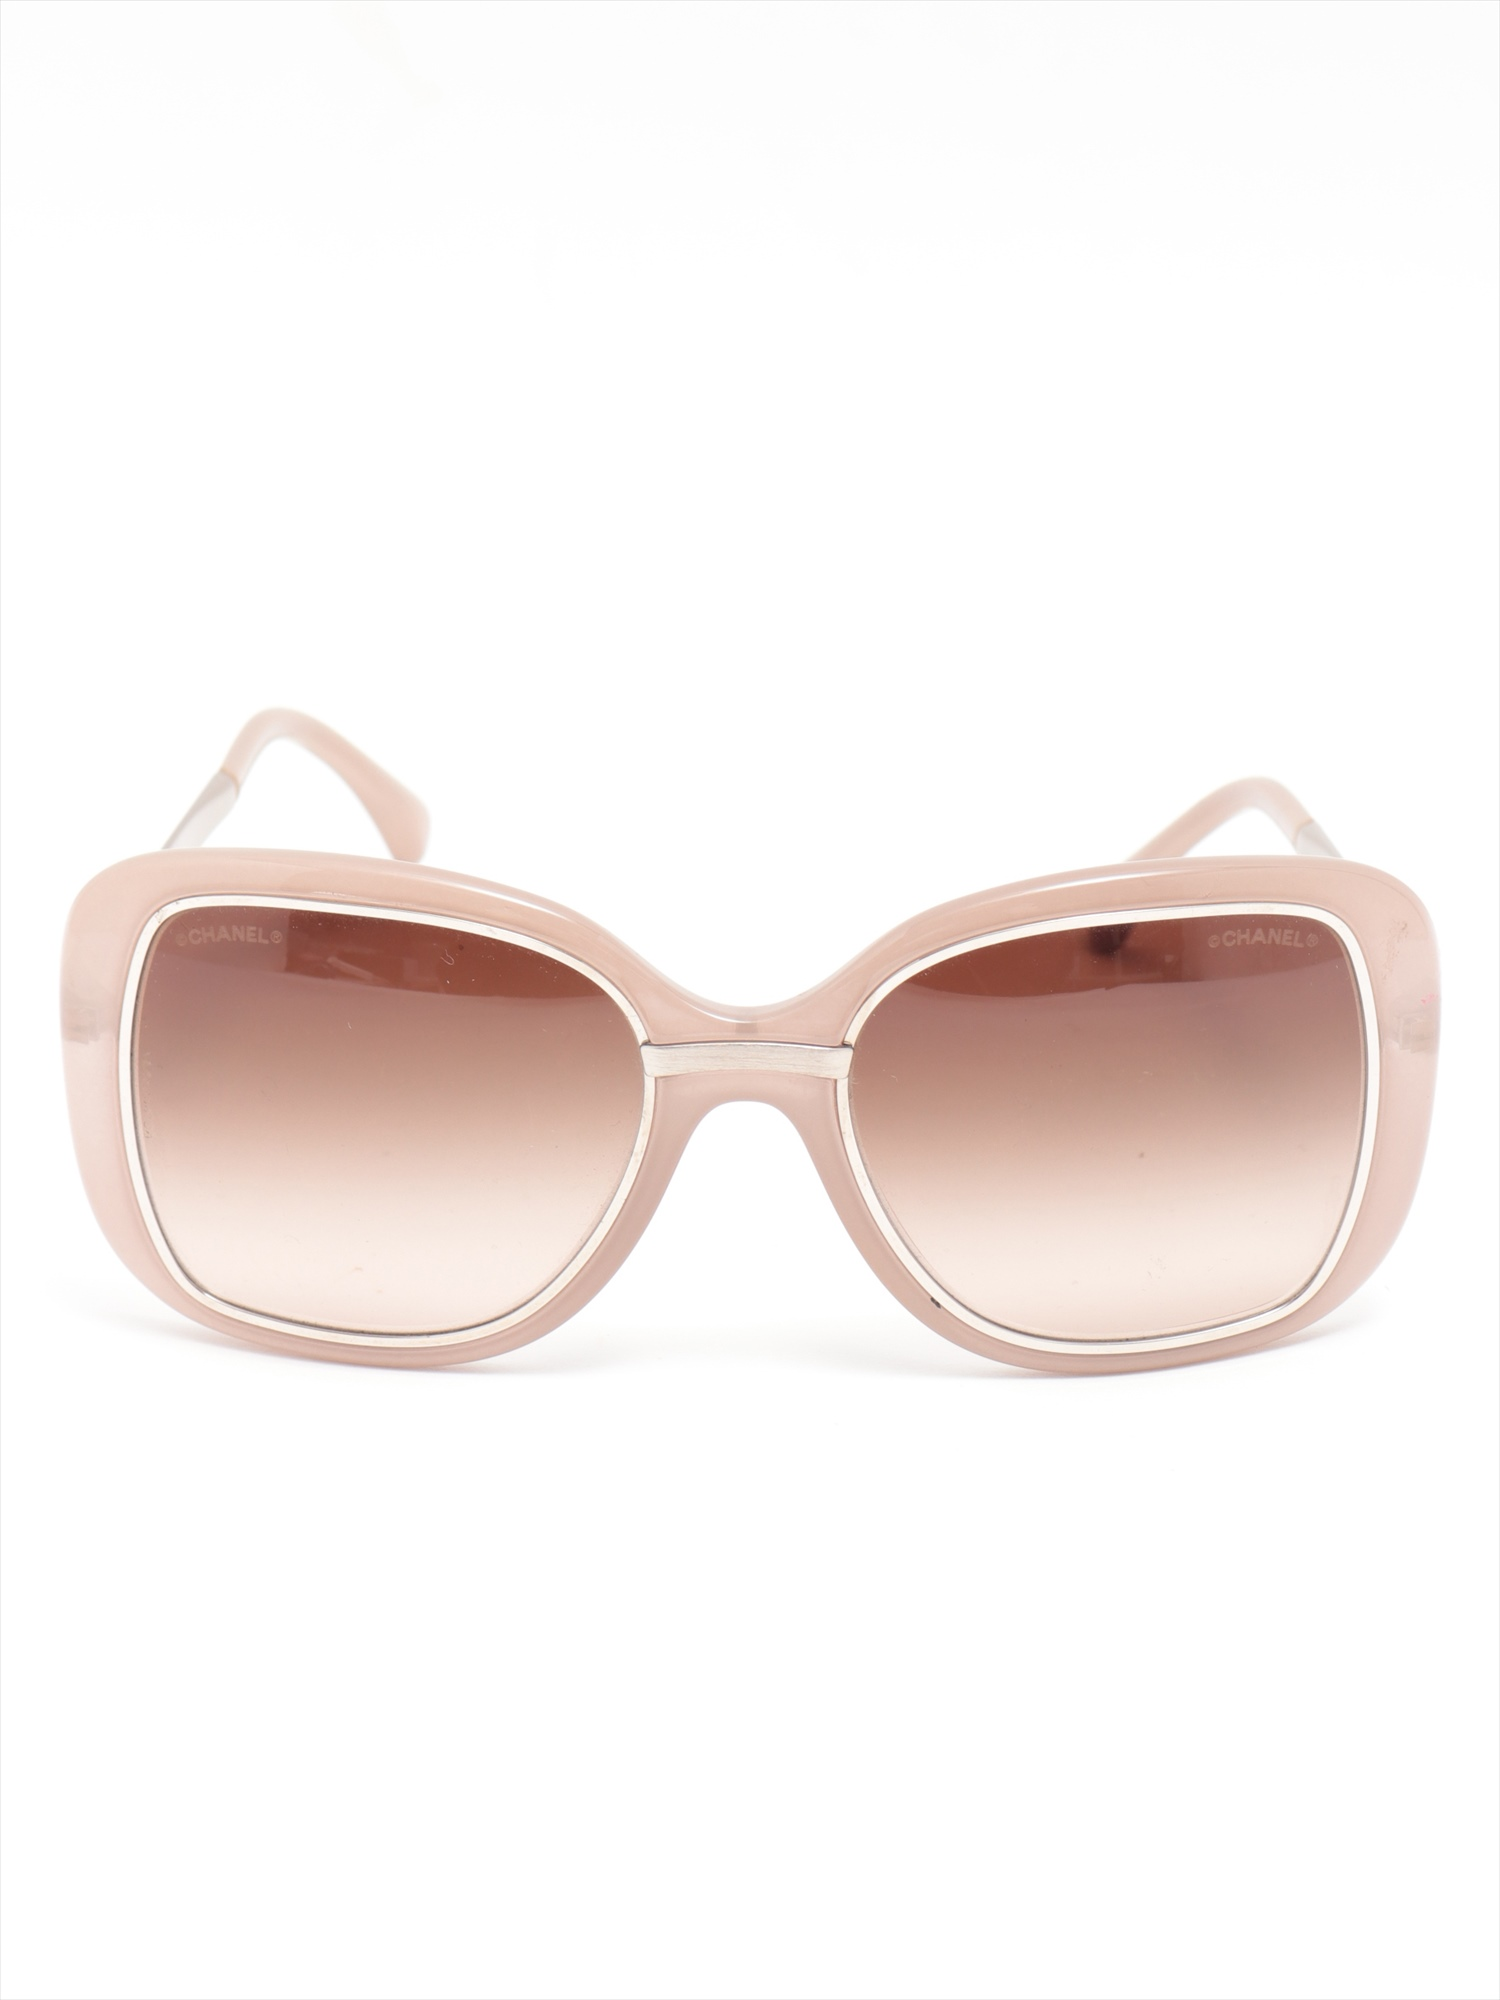 [Used goods] Chanel sunglasses plastic 6044-T pink beige with box